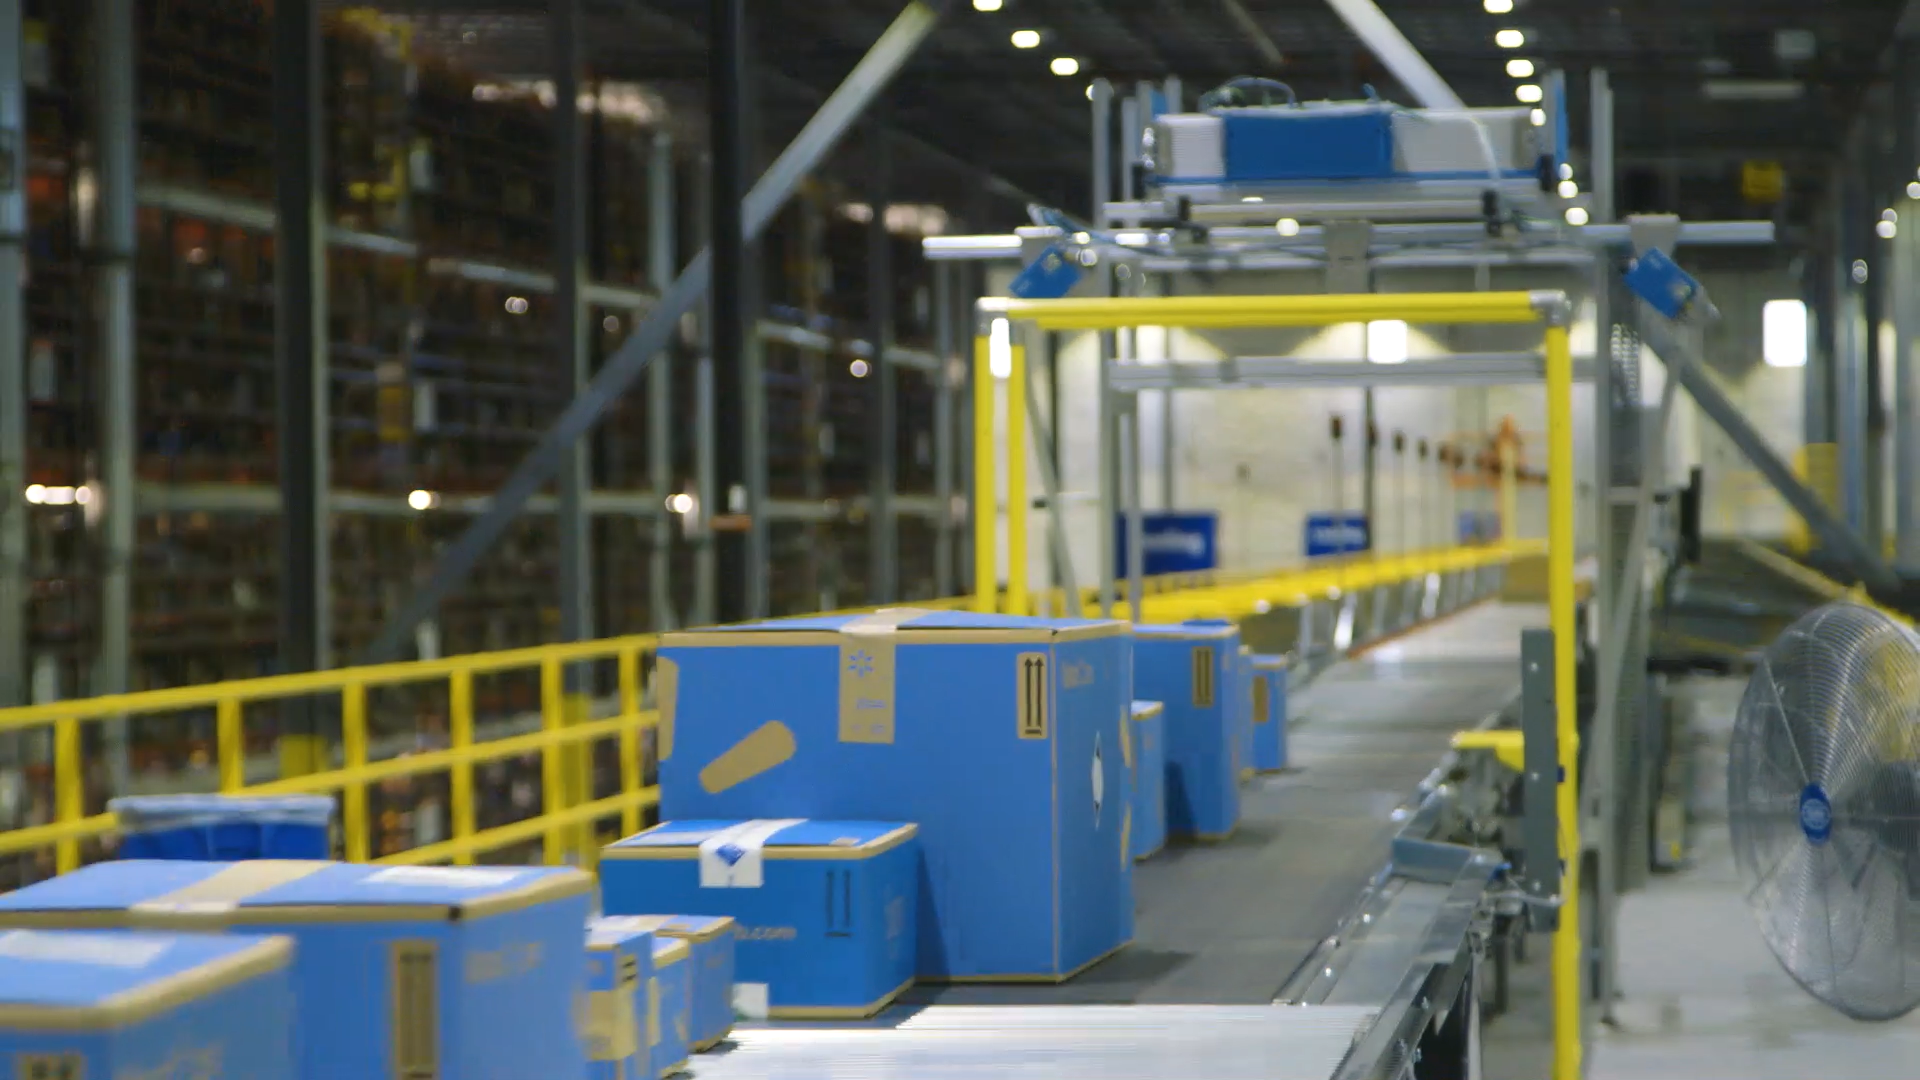 Blue boxes move on a belt in a Walmart fulfilment center